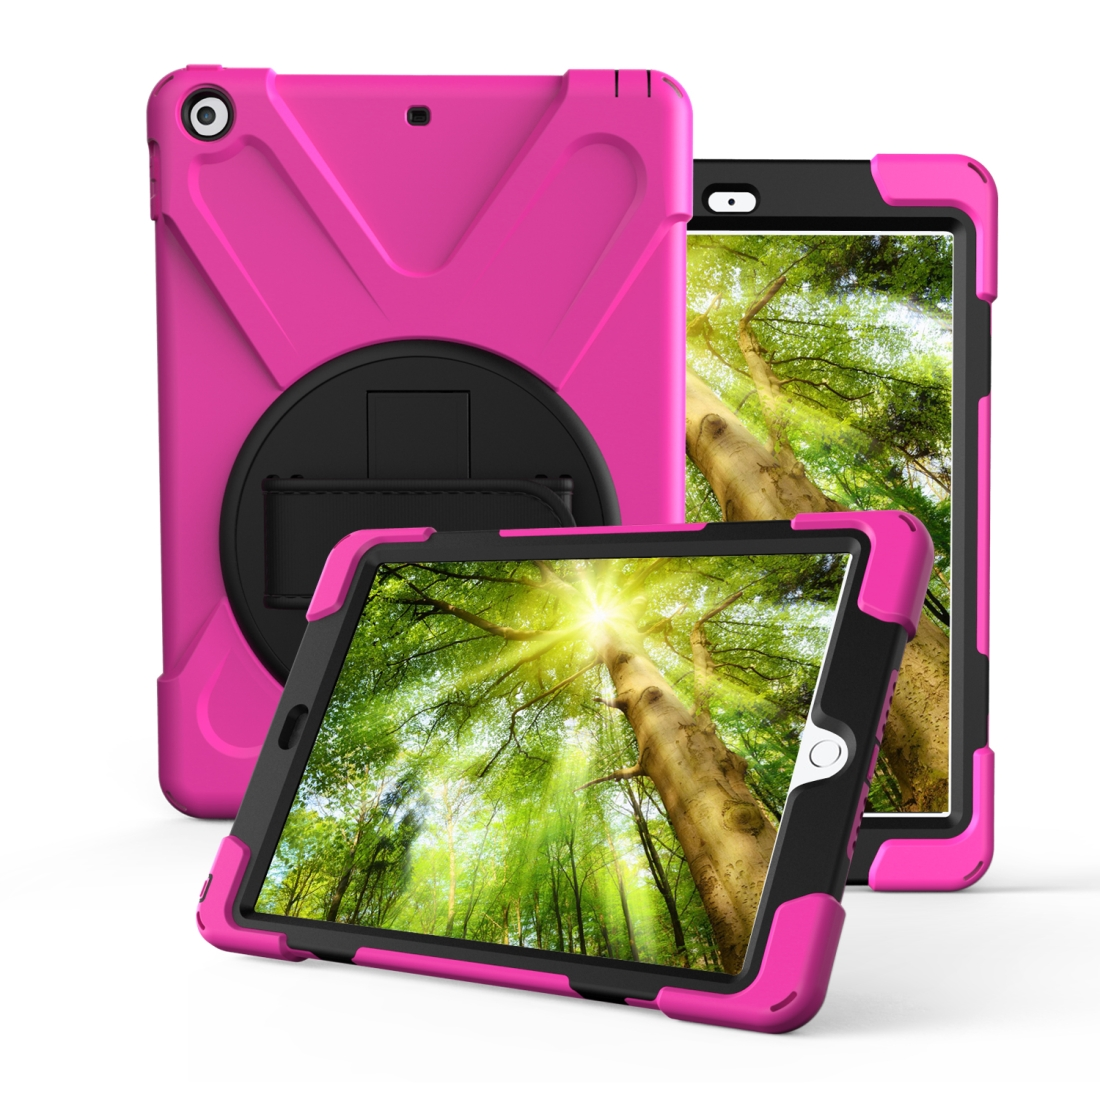 iPad 7th Generation Case (10.2 Inch) With A Protective Rotatable Design And Hand Strap (Rose Red)